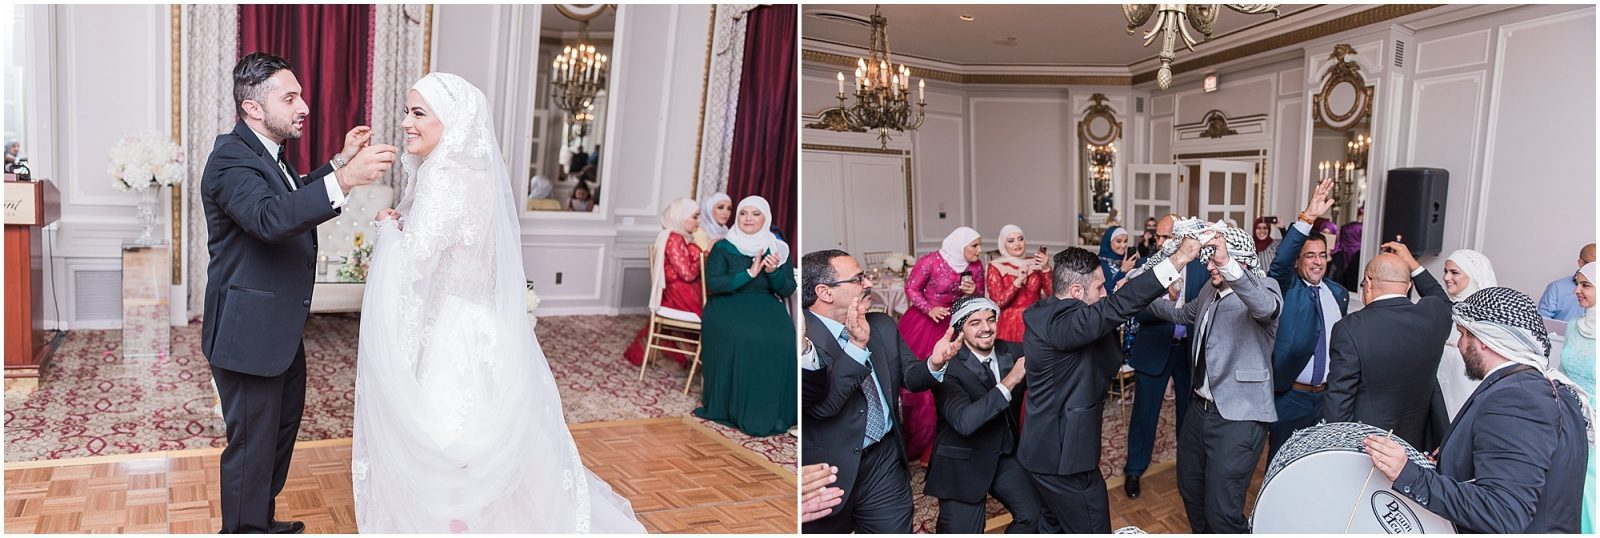 0081 Chateau Laurier Wedding - Hijabi Bride - Sireen & Anas- Ottawa_PhotosbyEmmaH.jpg